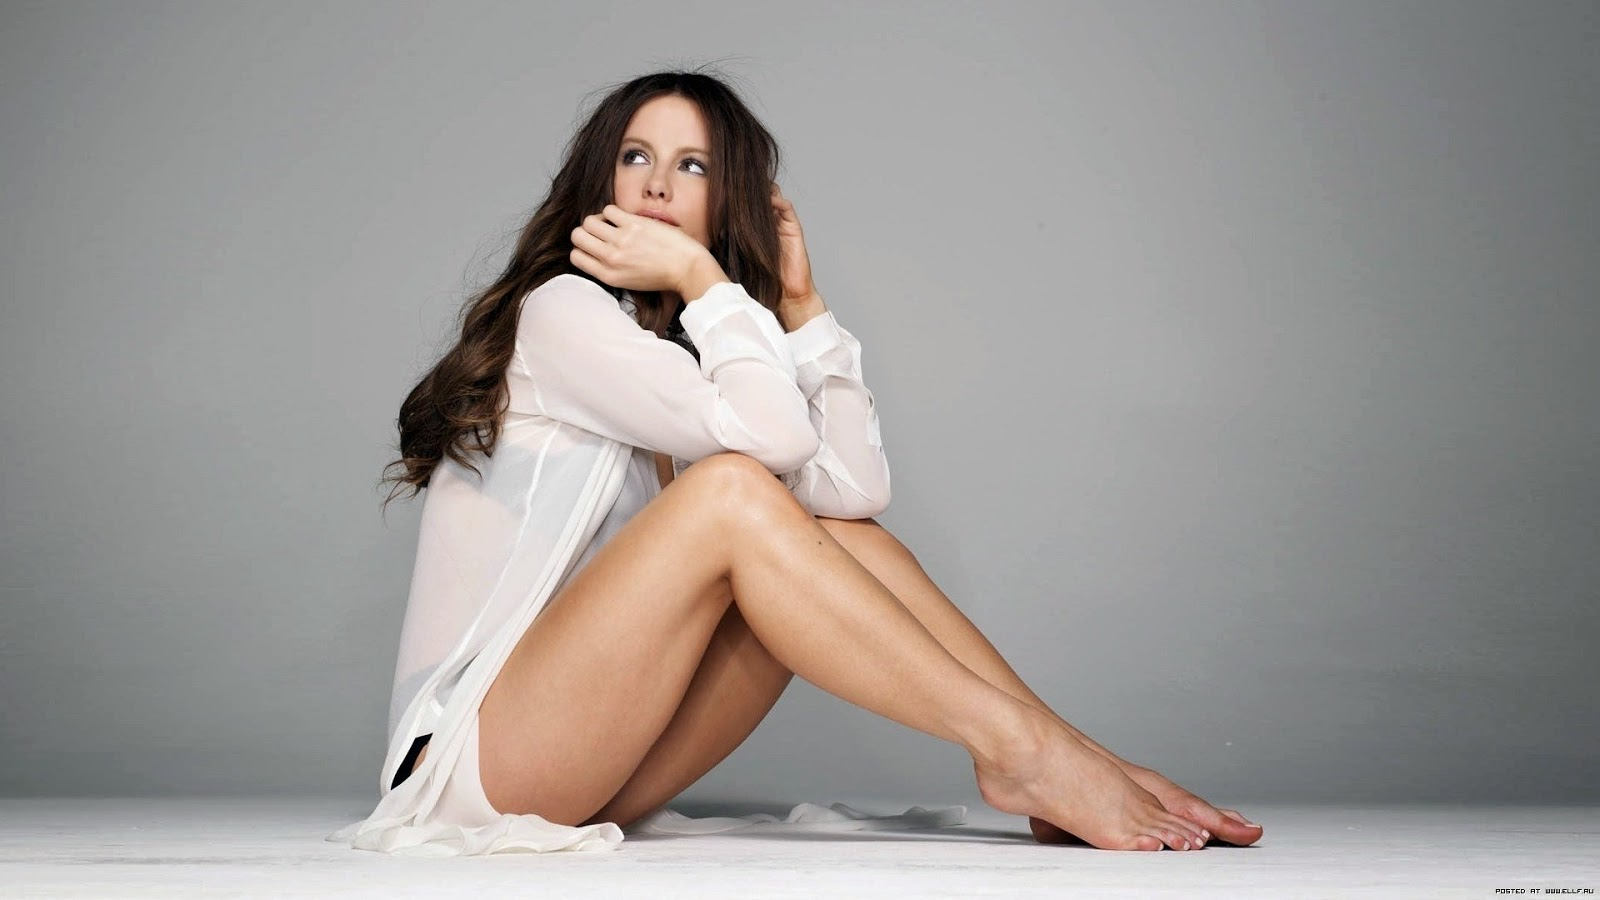 Girls with hot legs